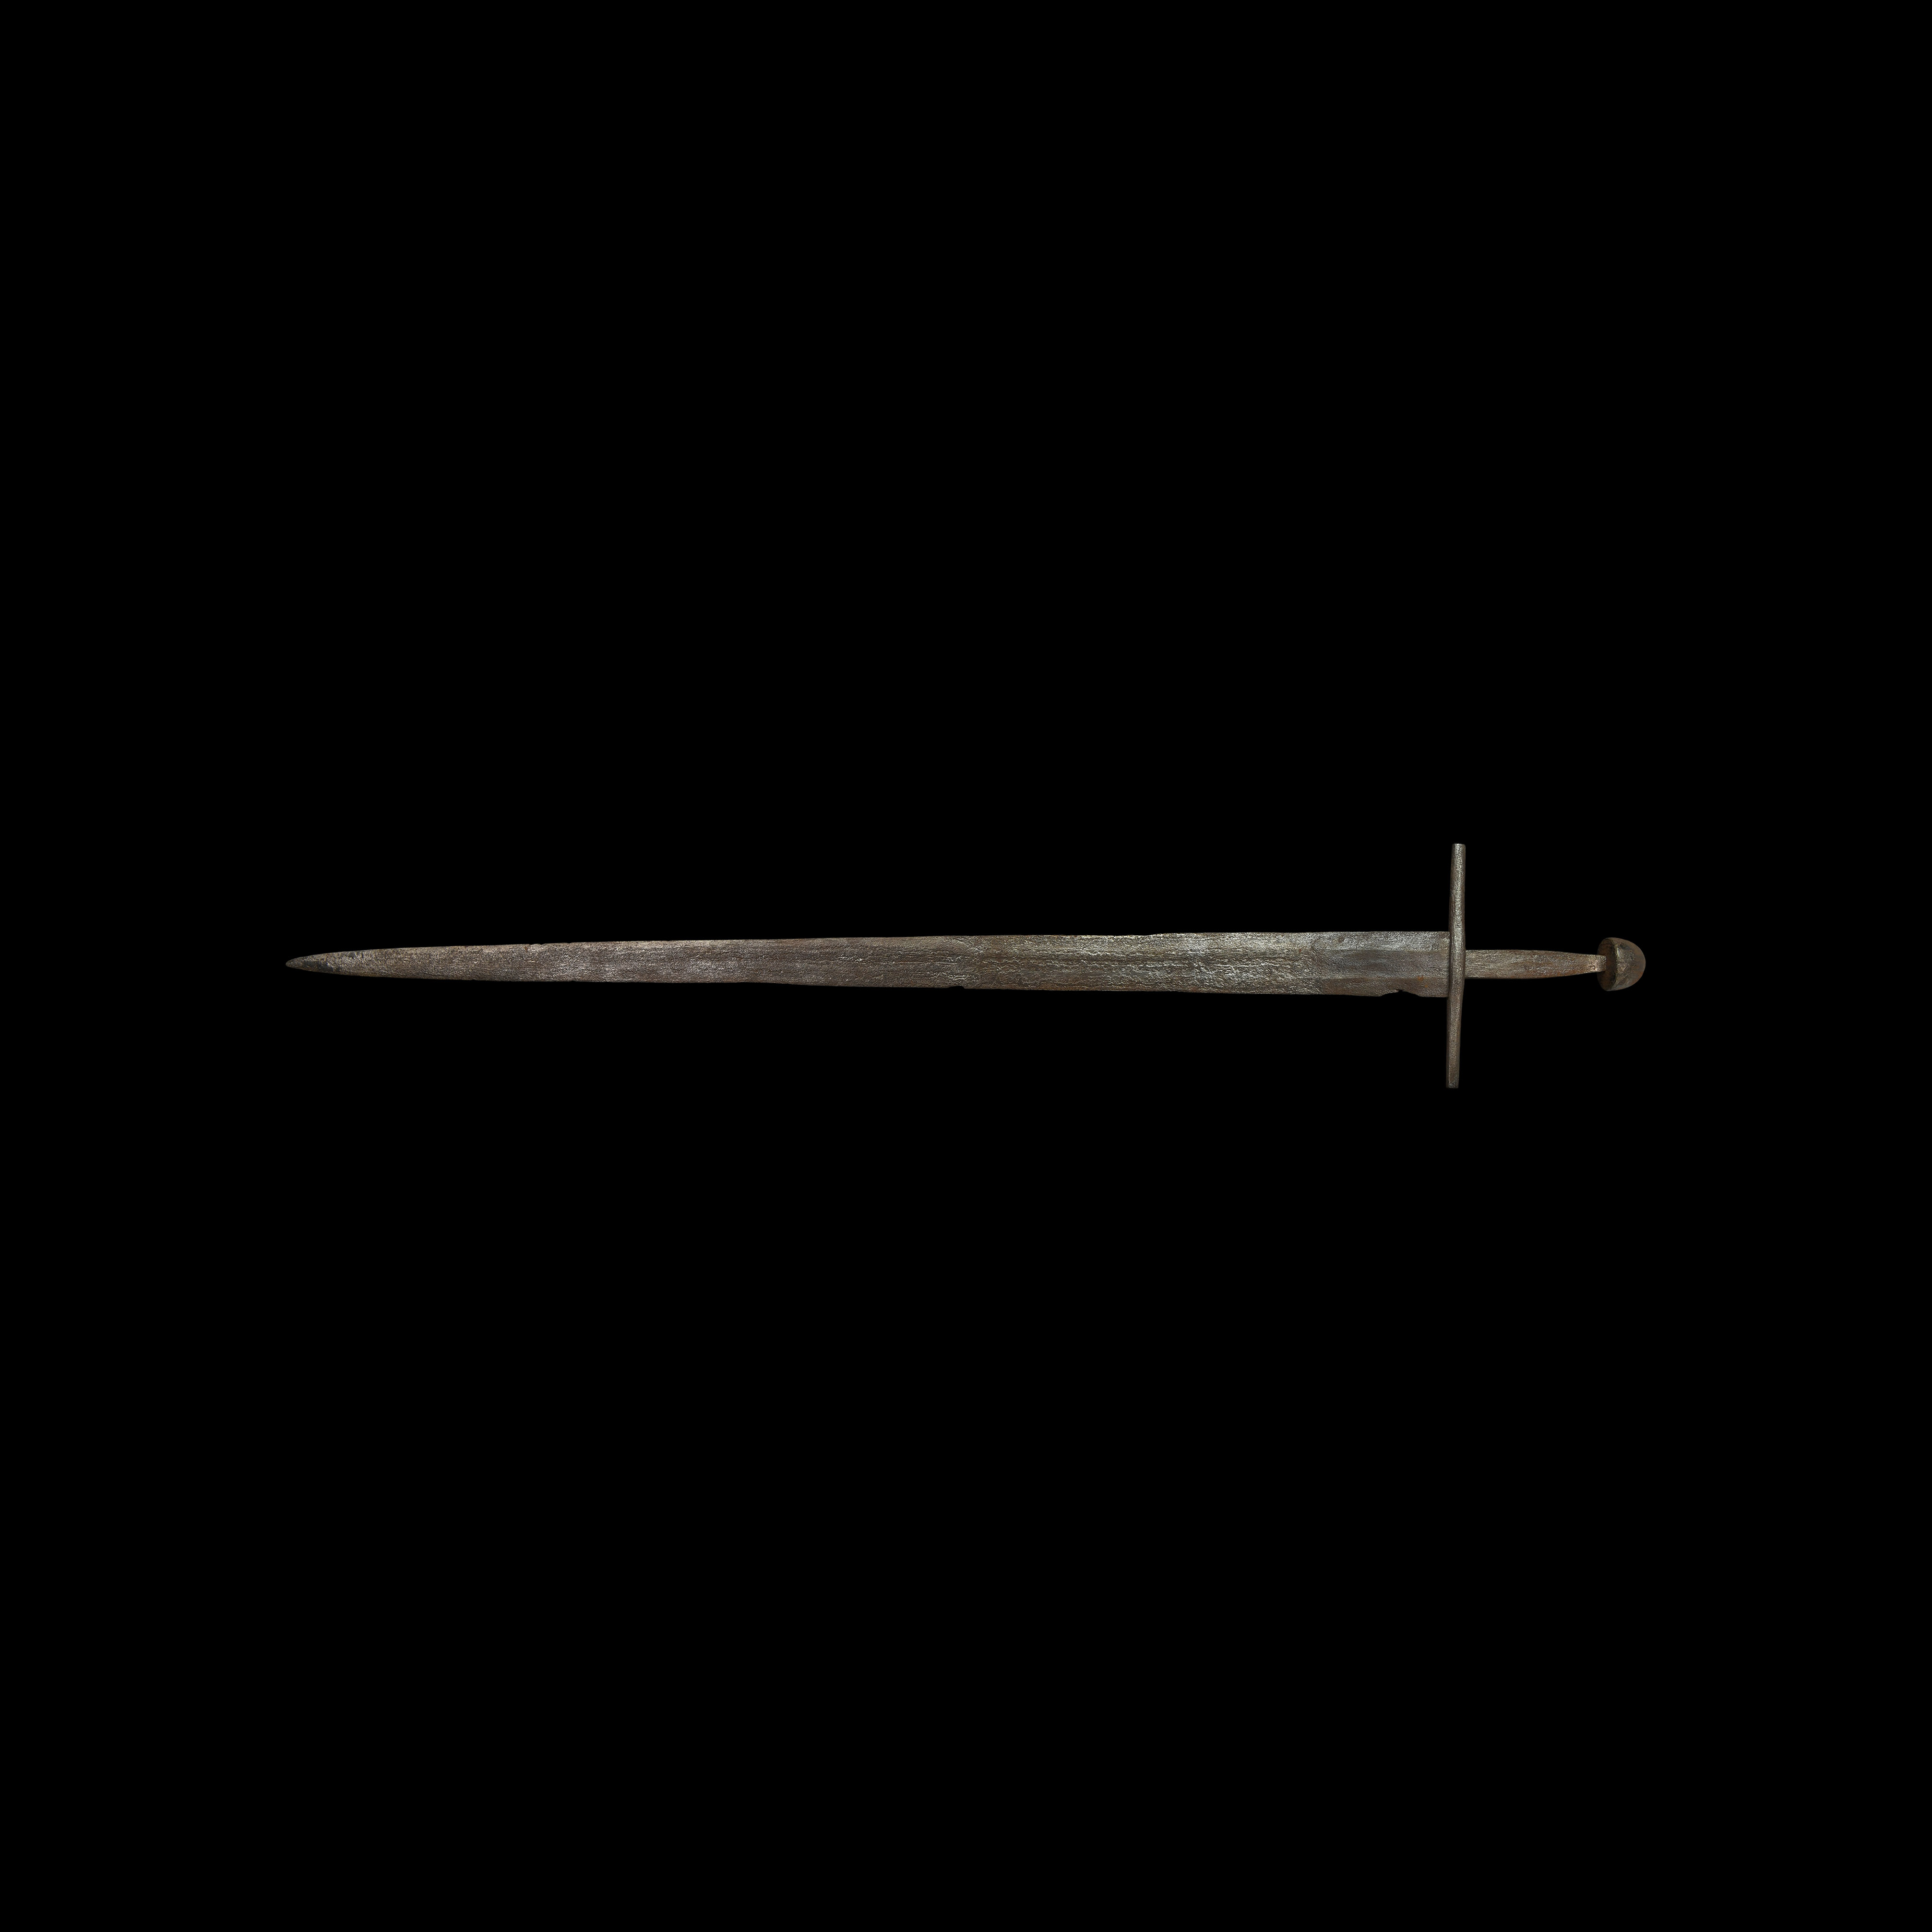 Medieval Single-Handed Double-Edged Sword